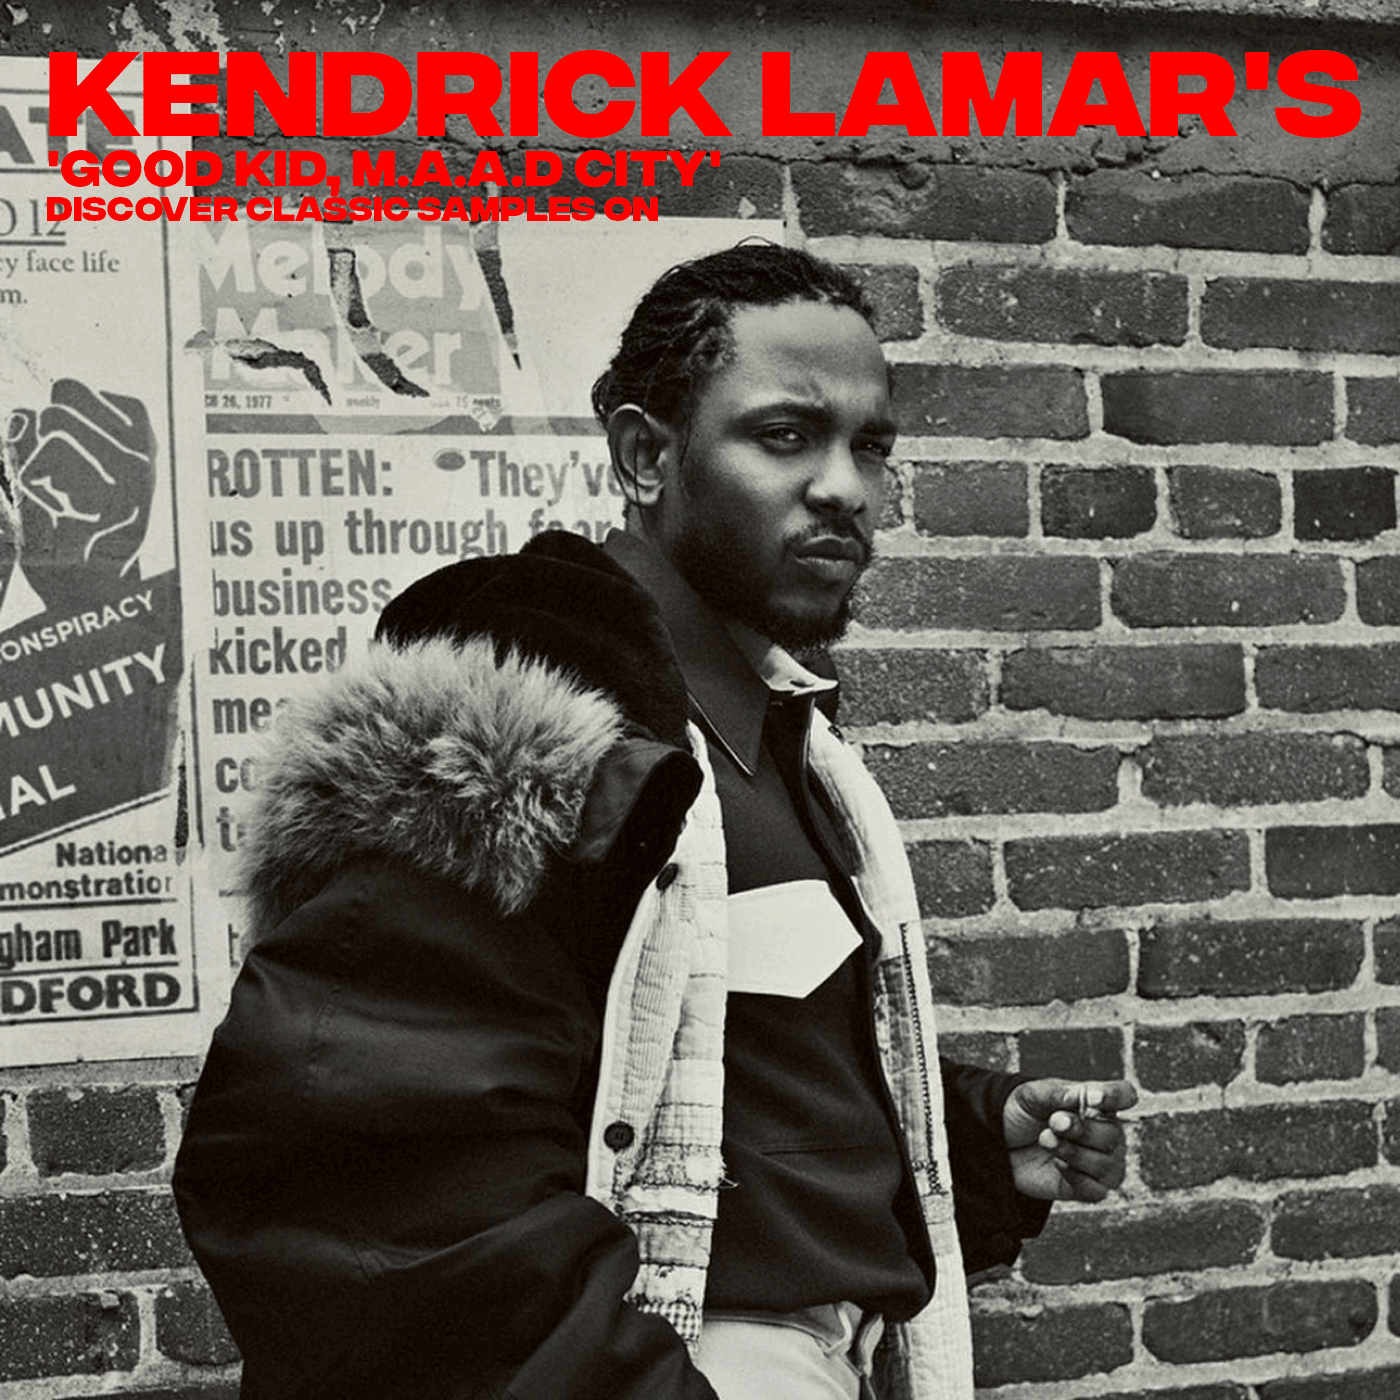 Discover Classic Samples On Kendrick Lamar's 'Good Kid, m.A.A.d City'